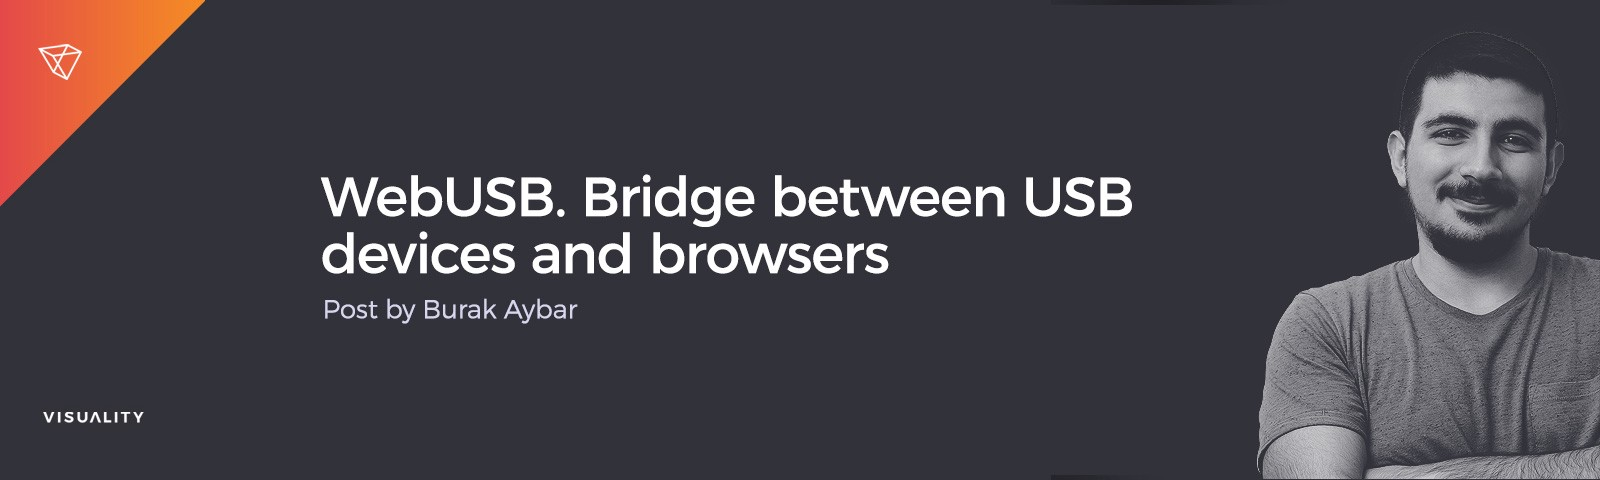 WebUSB - Bridge between USB devices and web browsers by Burak Aybar